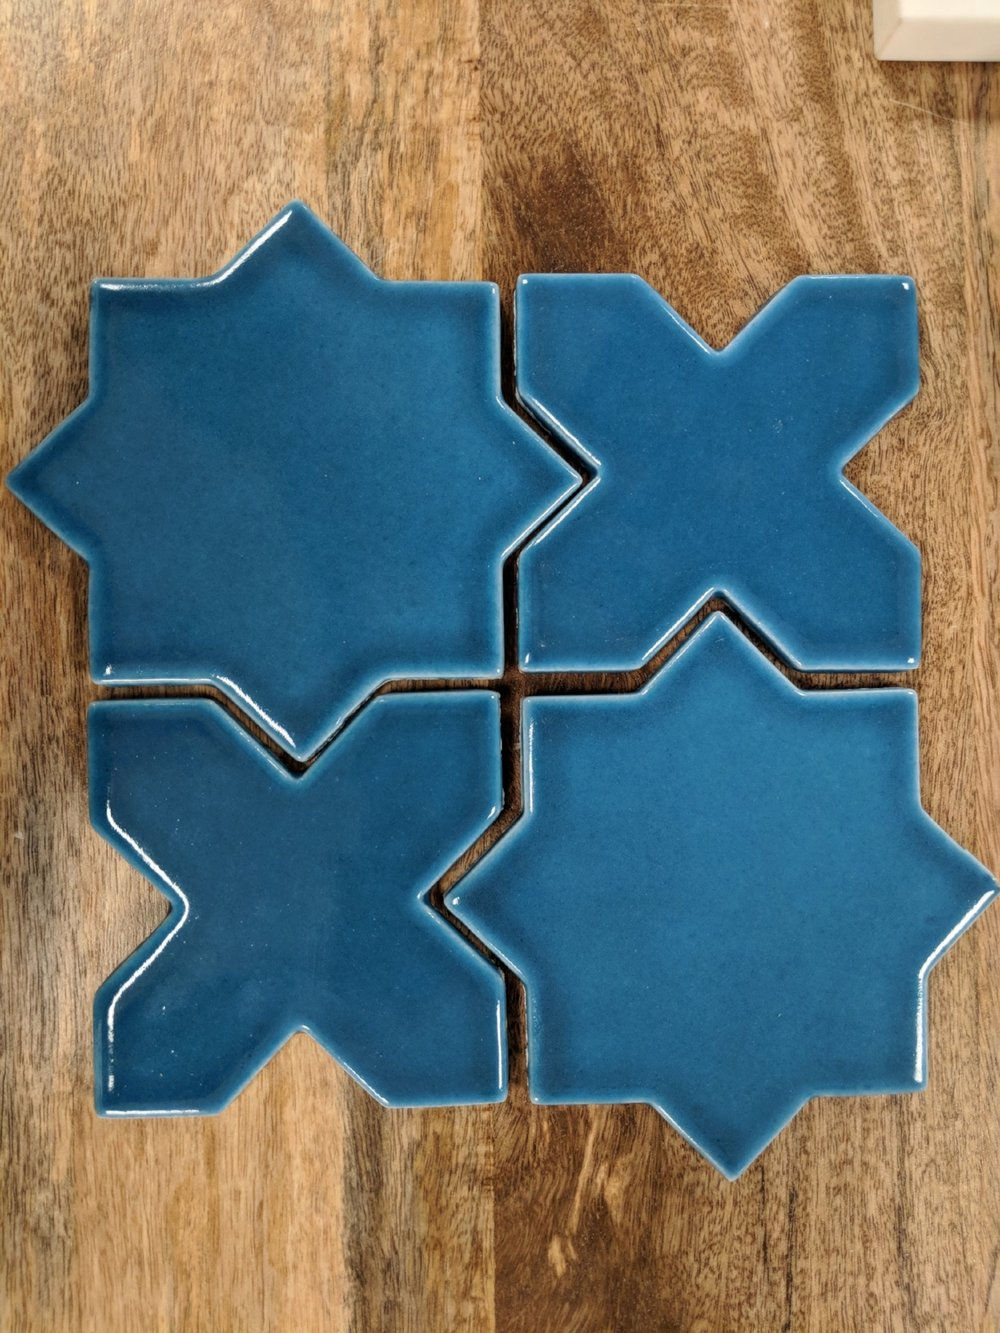 Unique tile choices